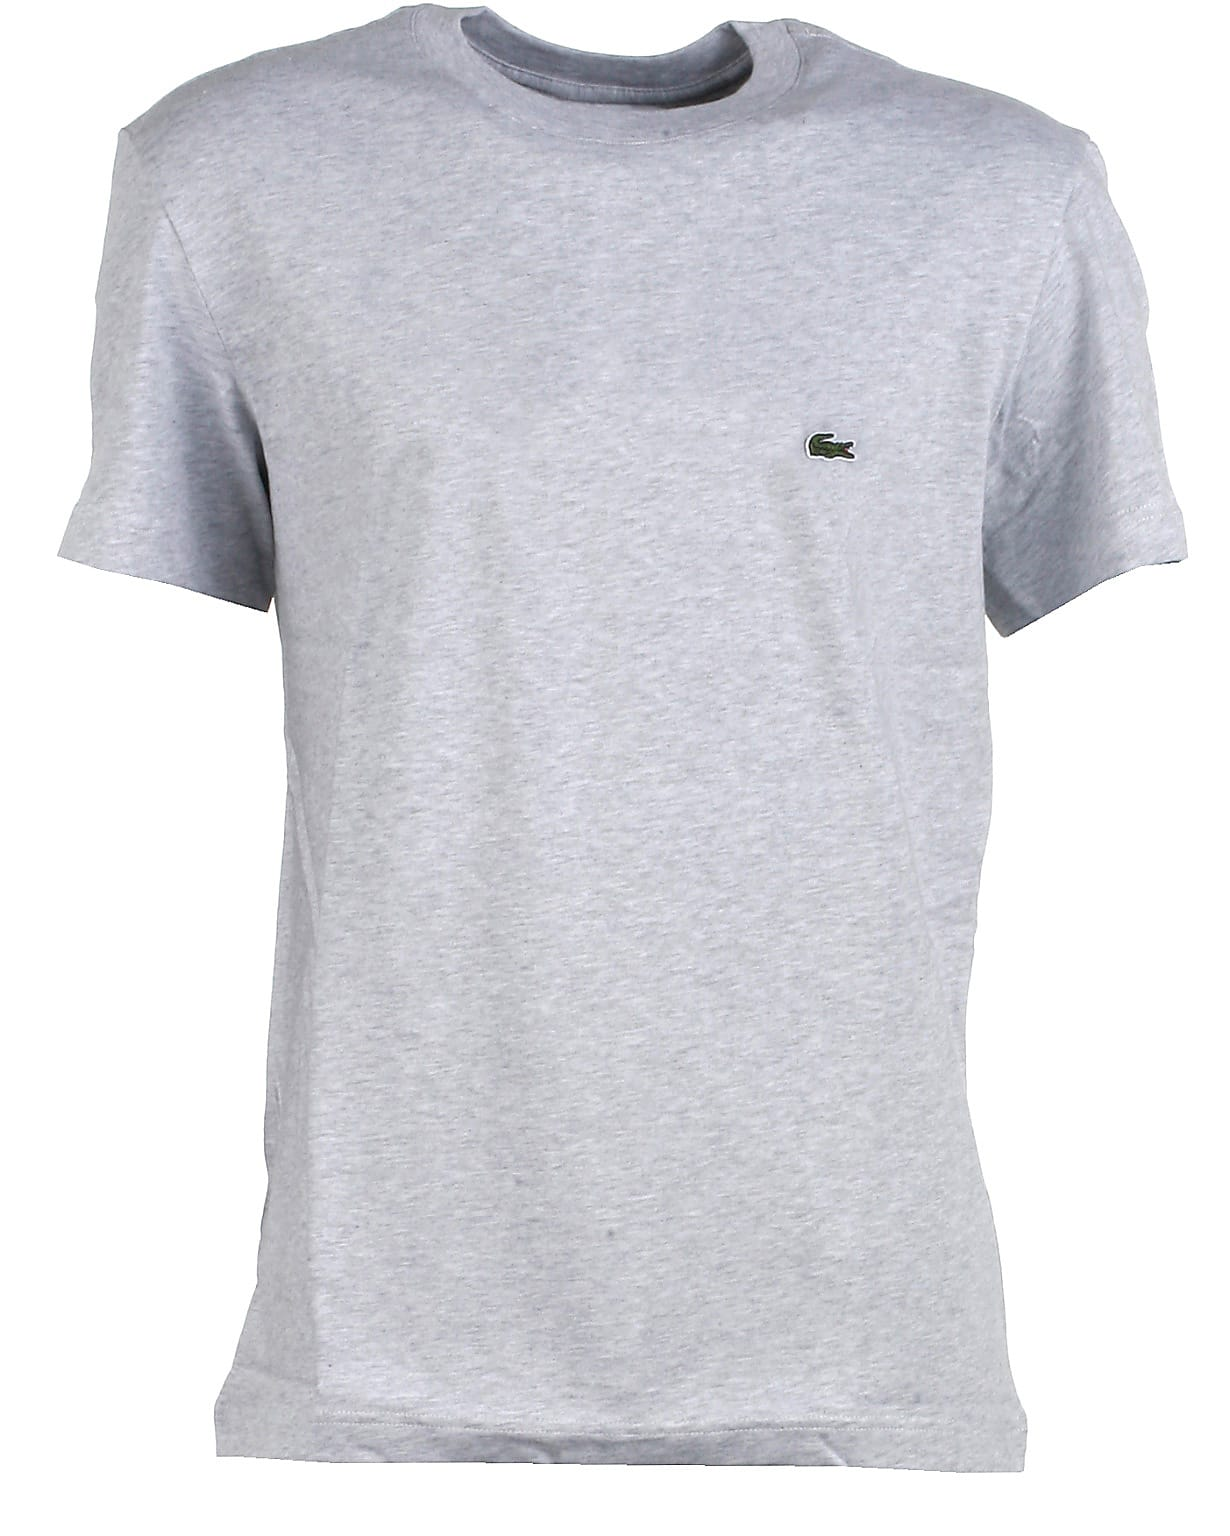 Image of Lacoste t-shirt s/s, grå